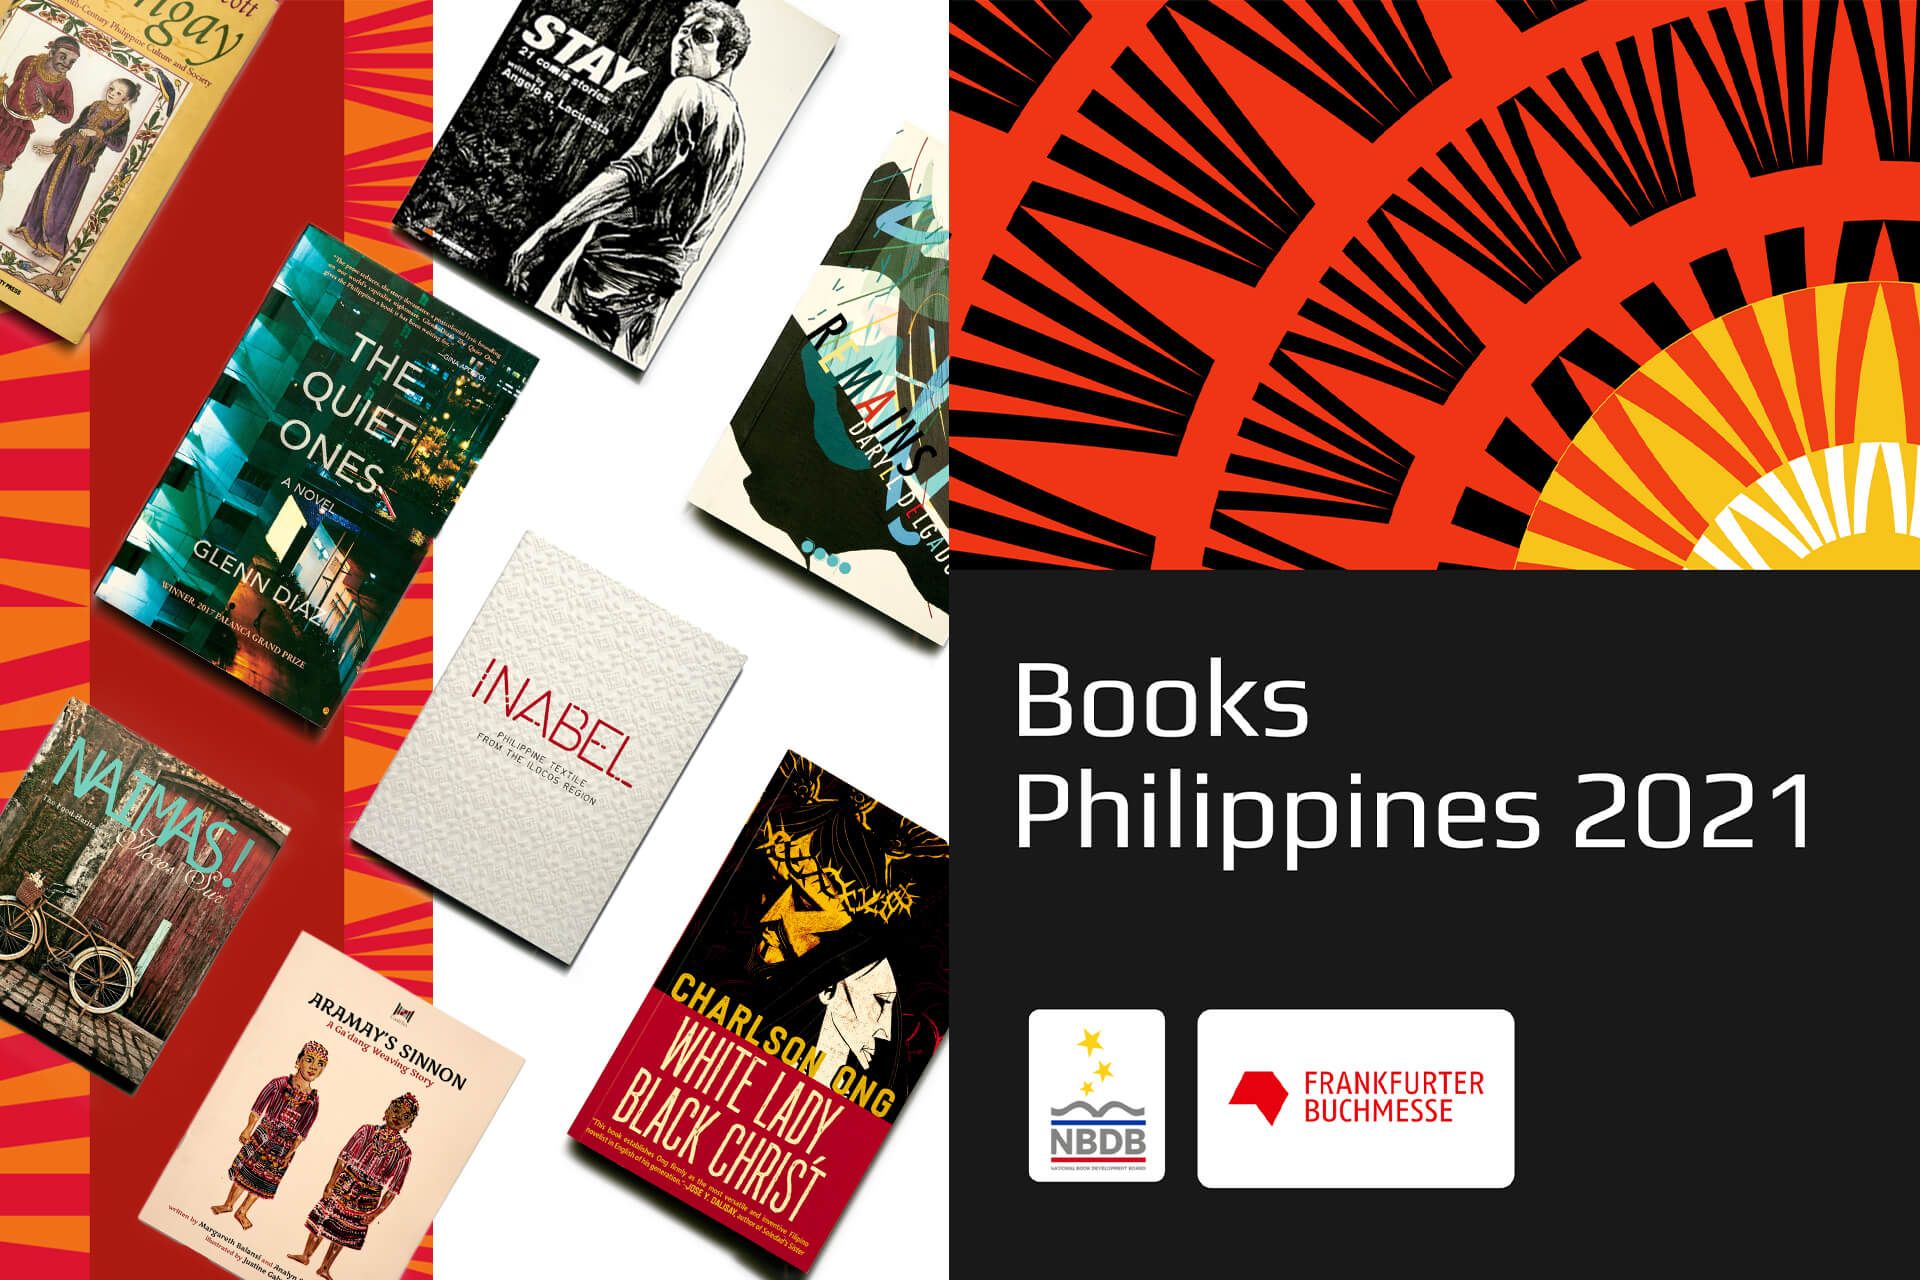 NBDB Philippines' book collection highlights the diversity of Filipino stories, from uncommon mythology to contemporary culture.